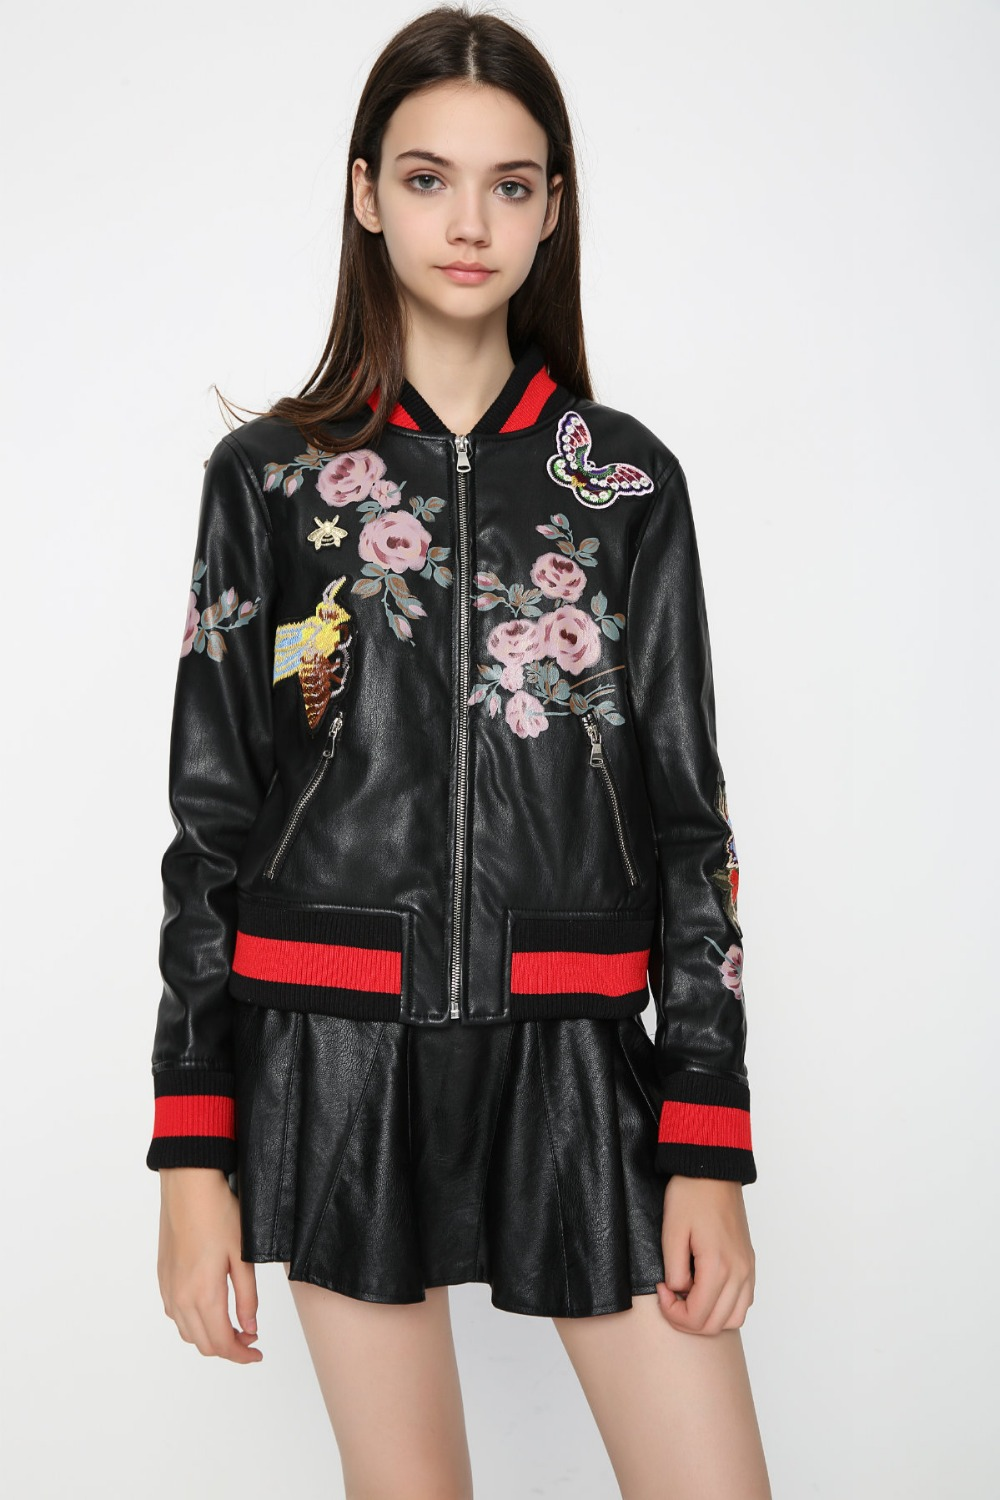 Leather jacket europe - Aliexpress Com Buy 2016 Hot Europe Winter Flower Bees Butterfly Embroidery Pu Leather Jacket Women 2016 Fashion Print Slim Baesball Basic Coat From